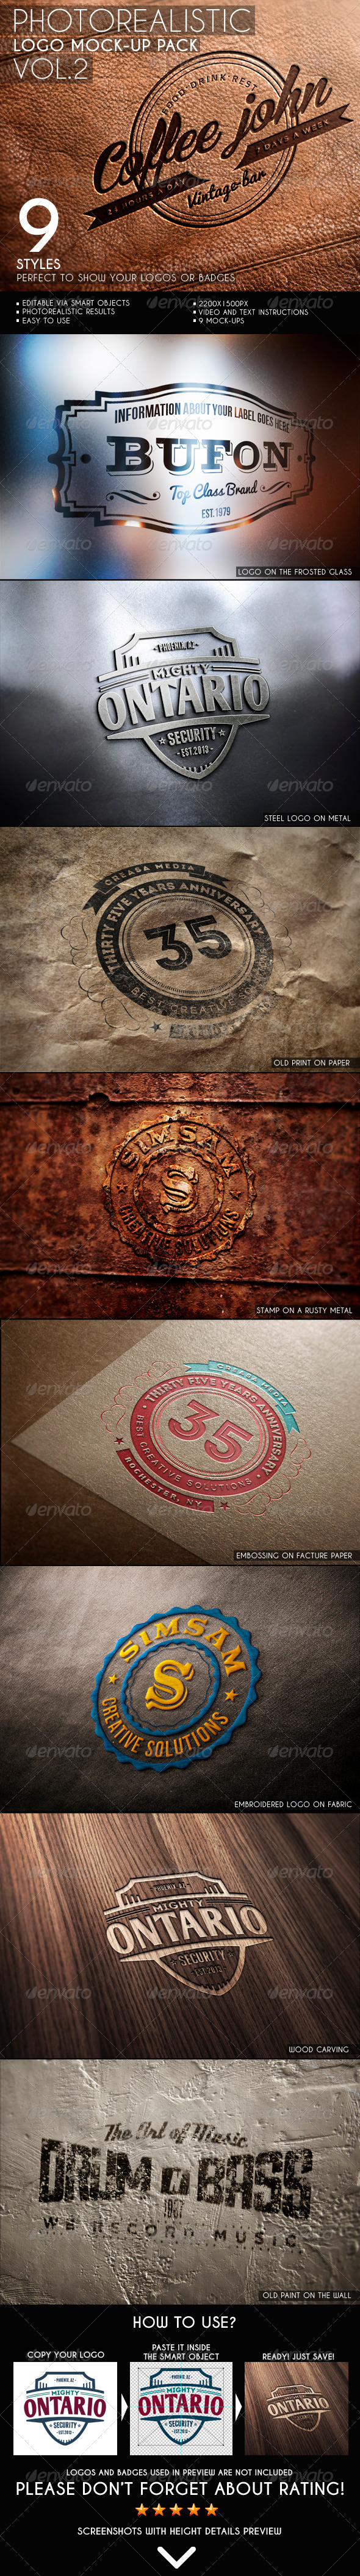 GraphicRiver Photorealistic Logo Mock-Up Pack Vol.2 6533596